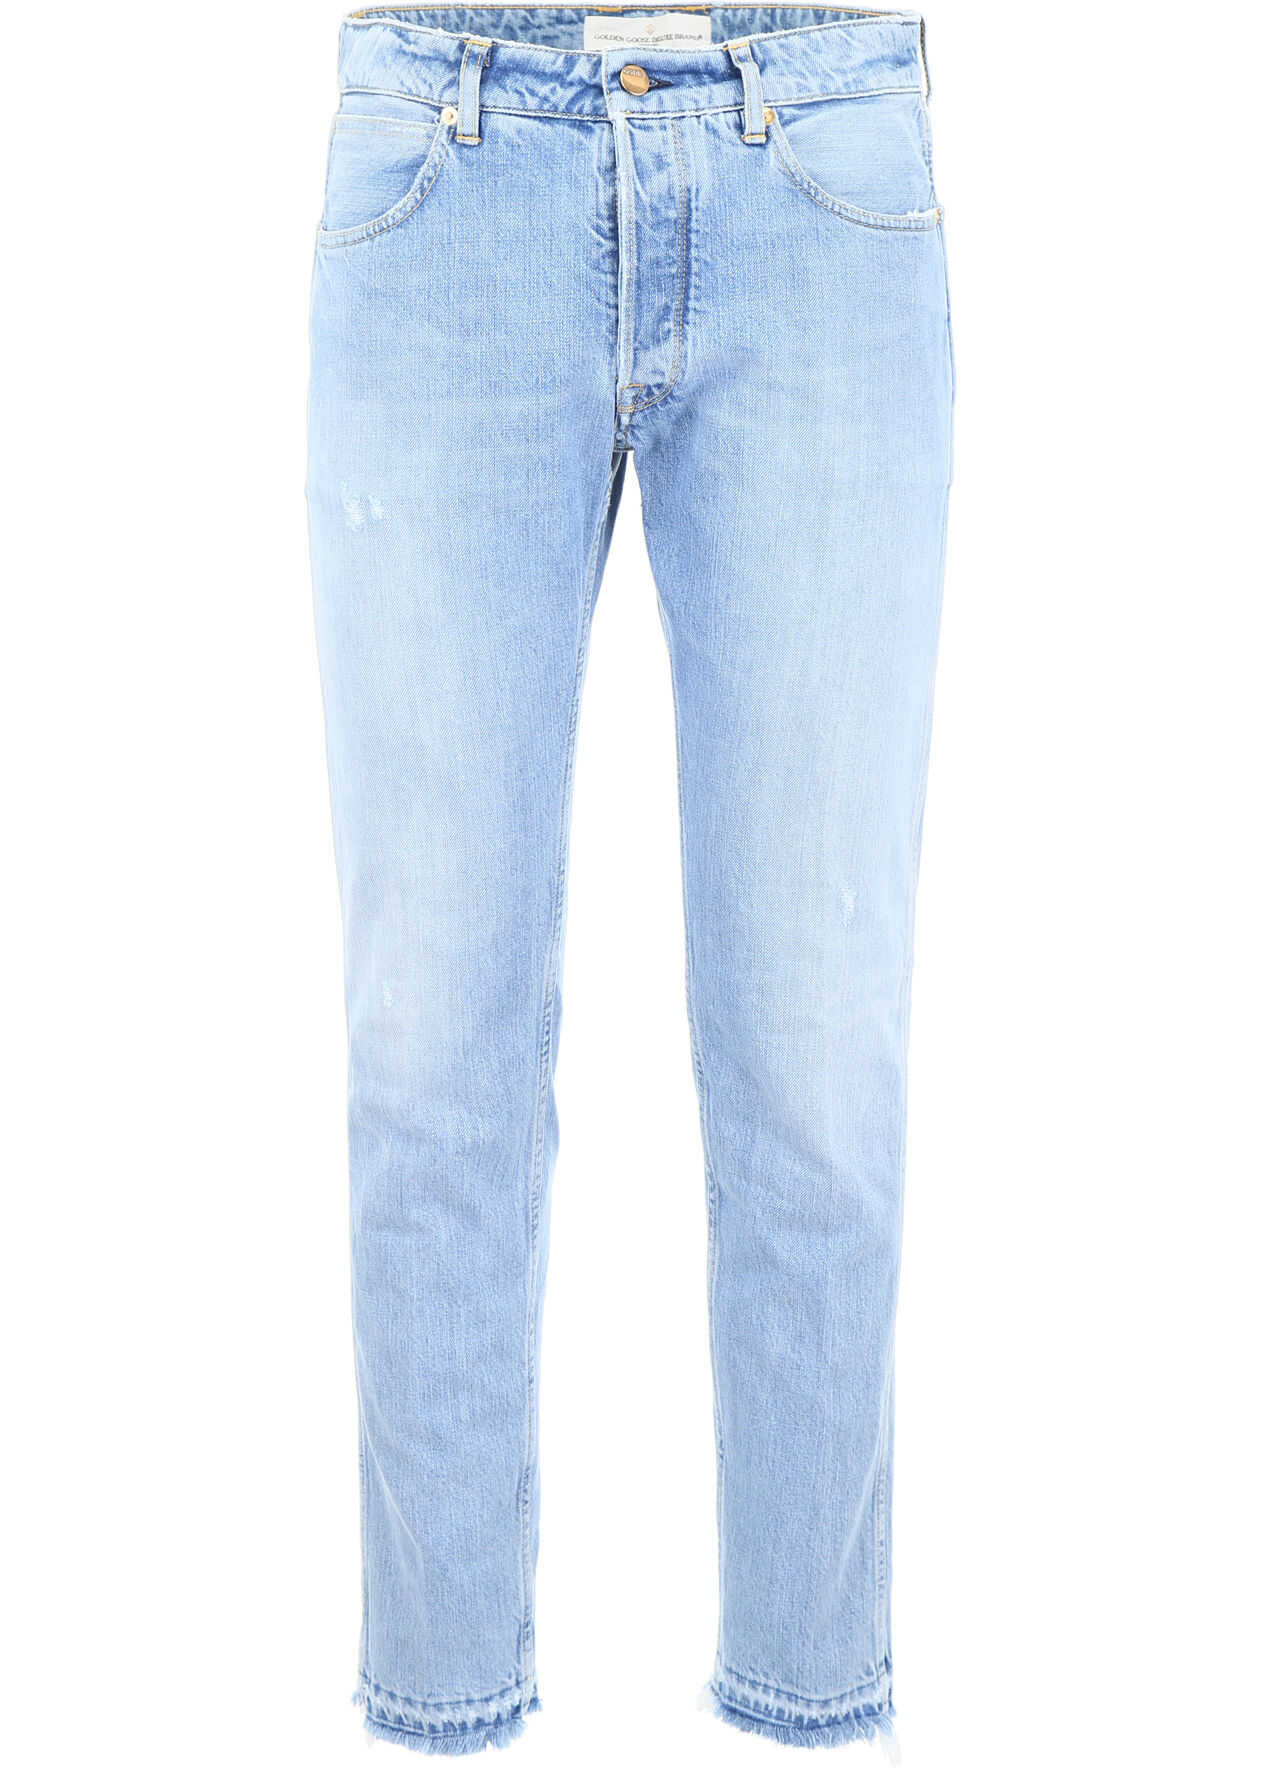 Golden Goose Jeans With Five Pockets LIGHT BLUE